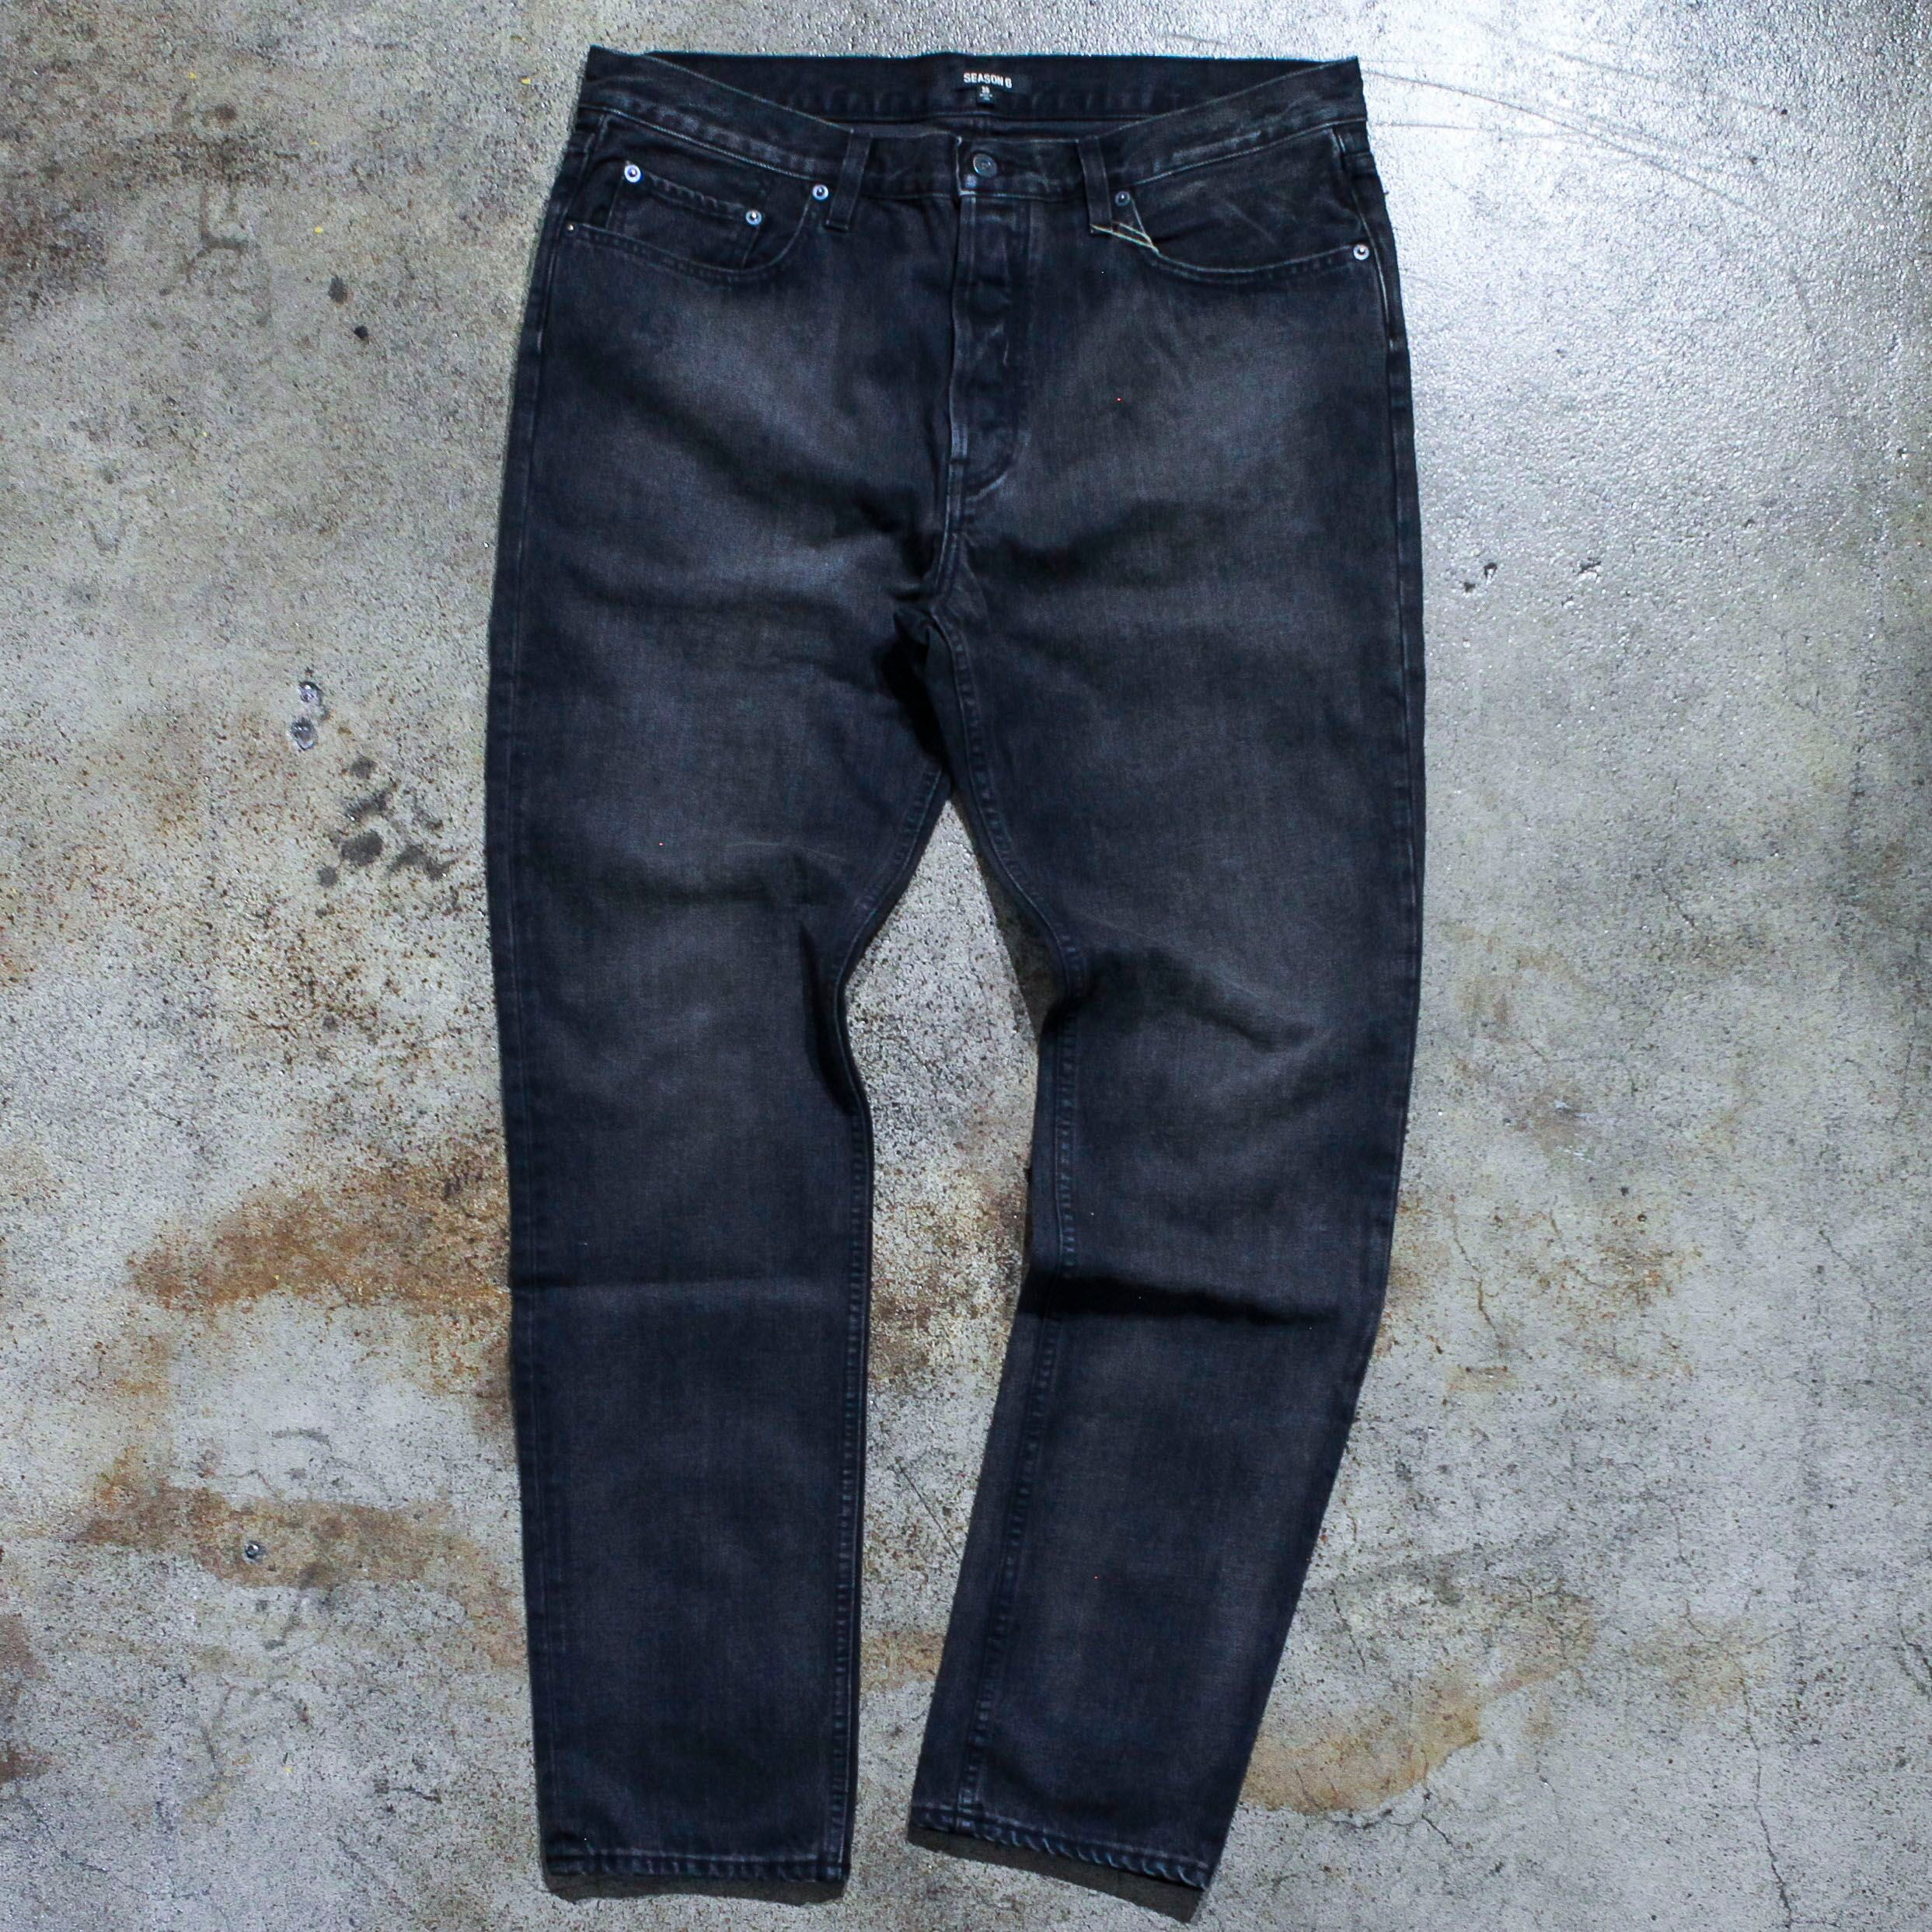 Yeezy Season 6 Washed Black Denim Jeans